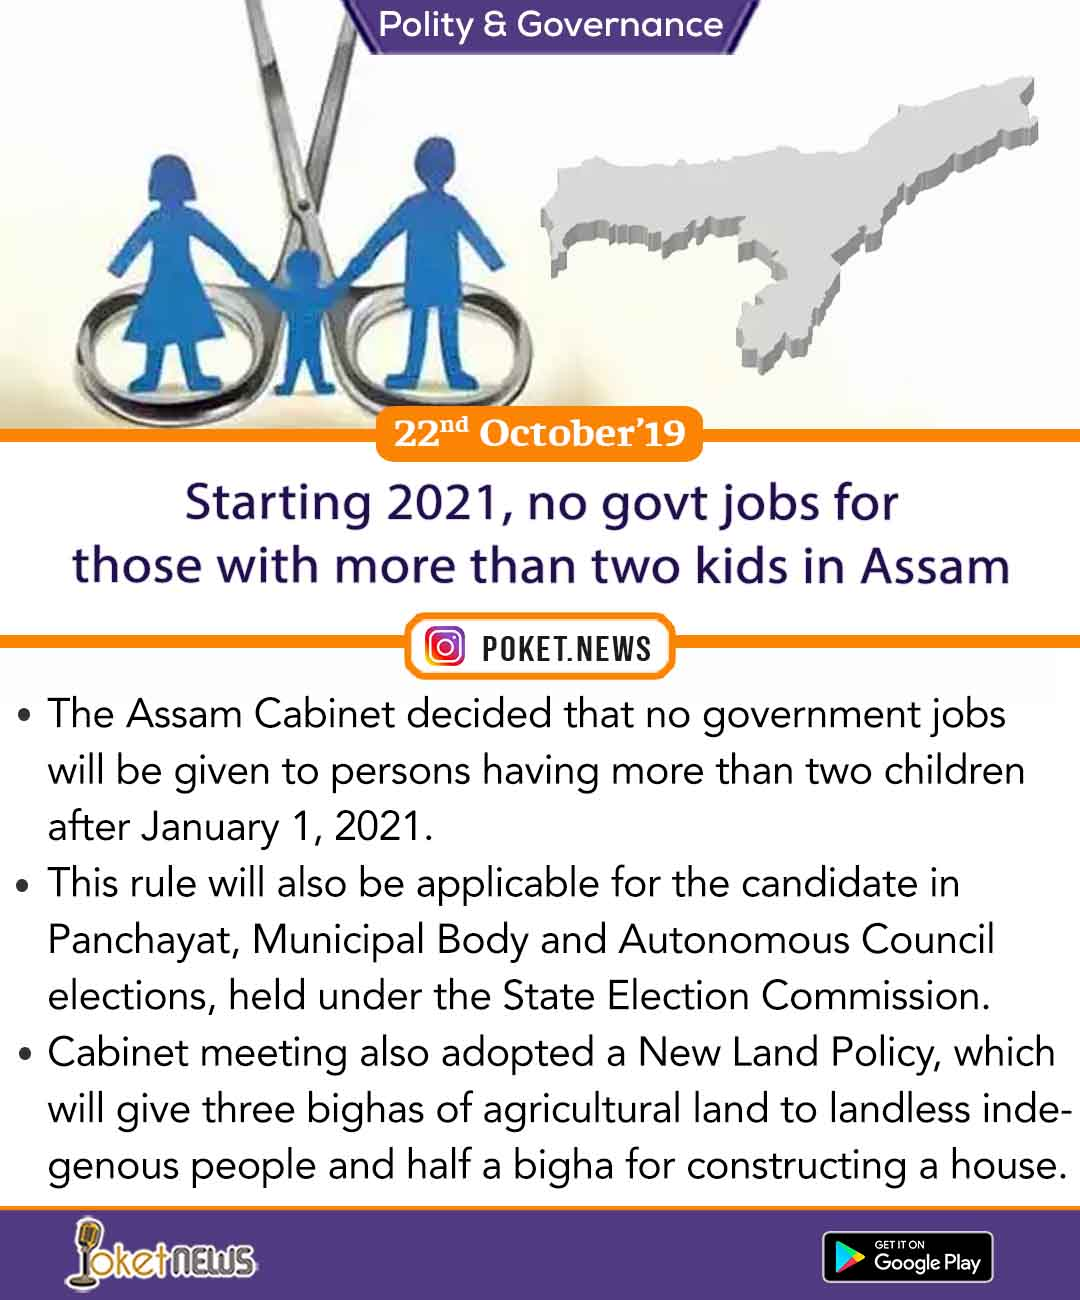 Starting 2021, no govt jobs for those with more than two kids in Assam